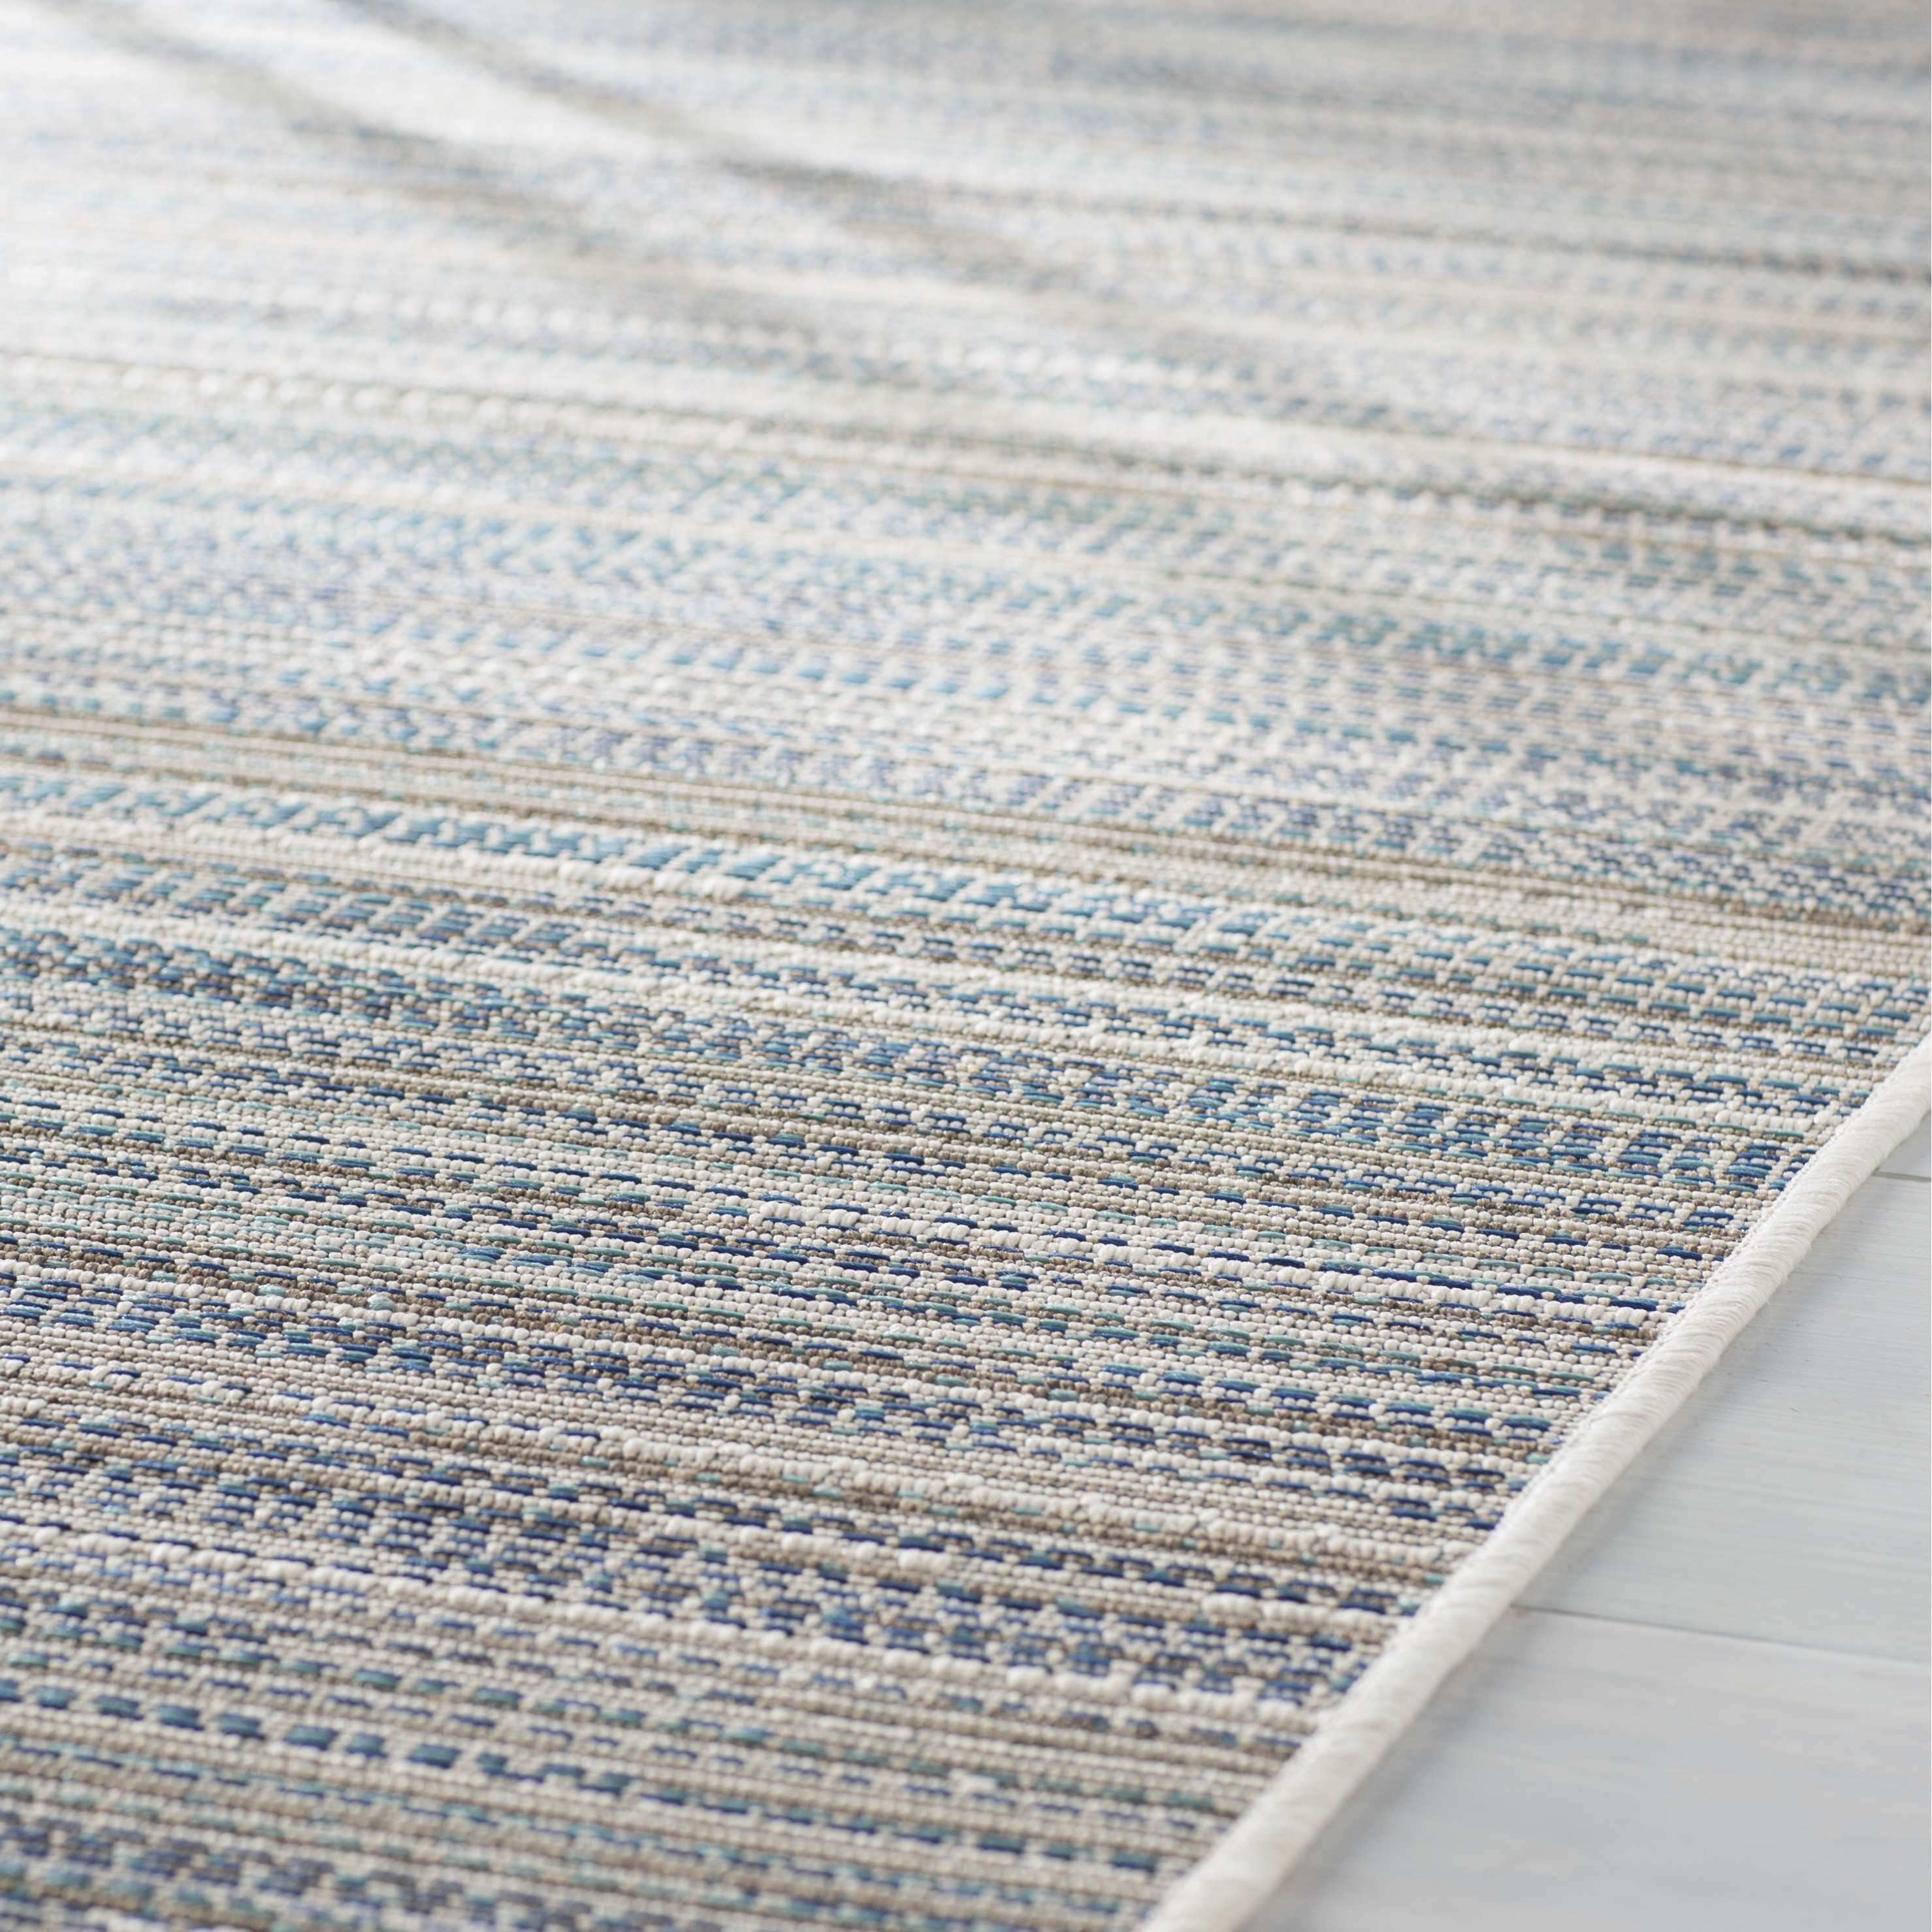 Rugs Target Rugs 4×6 8×10 Rugs Under 100 8×10 Area Rugs Cheap Throughout Cheap Silver Rugs (Image 15 of 15)